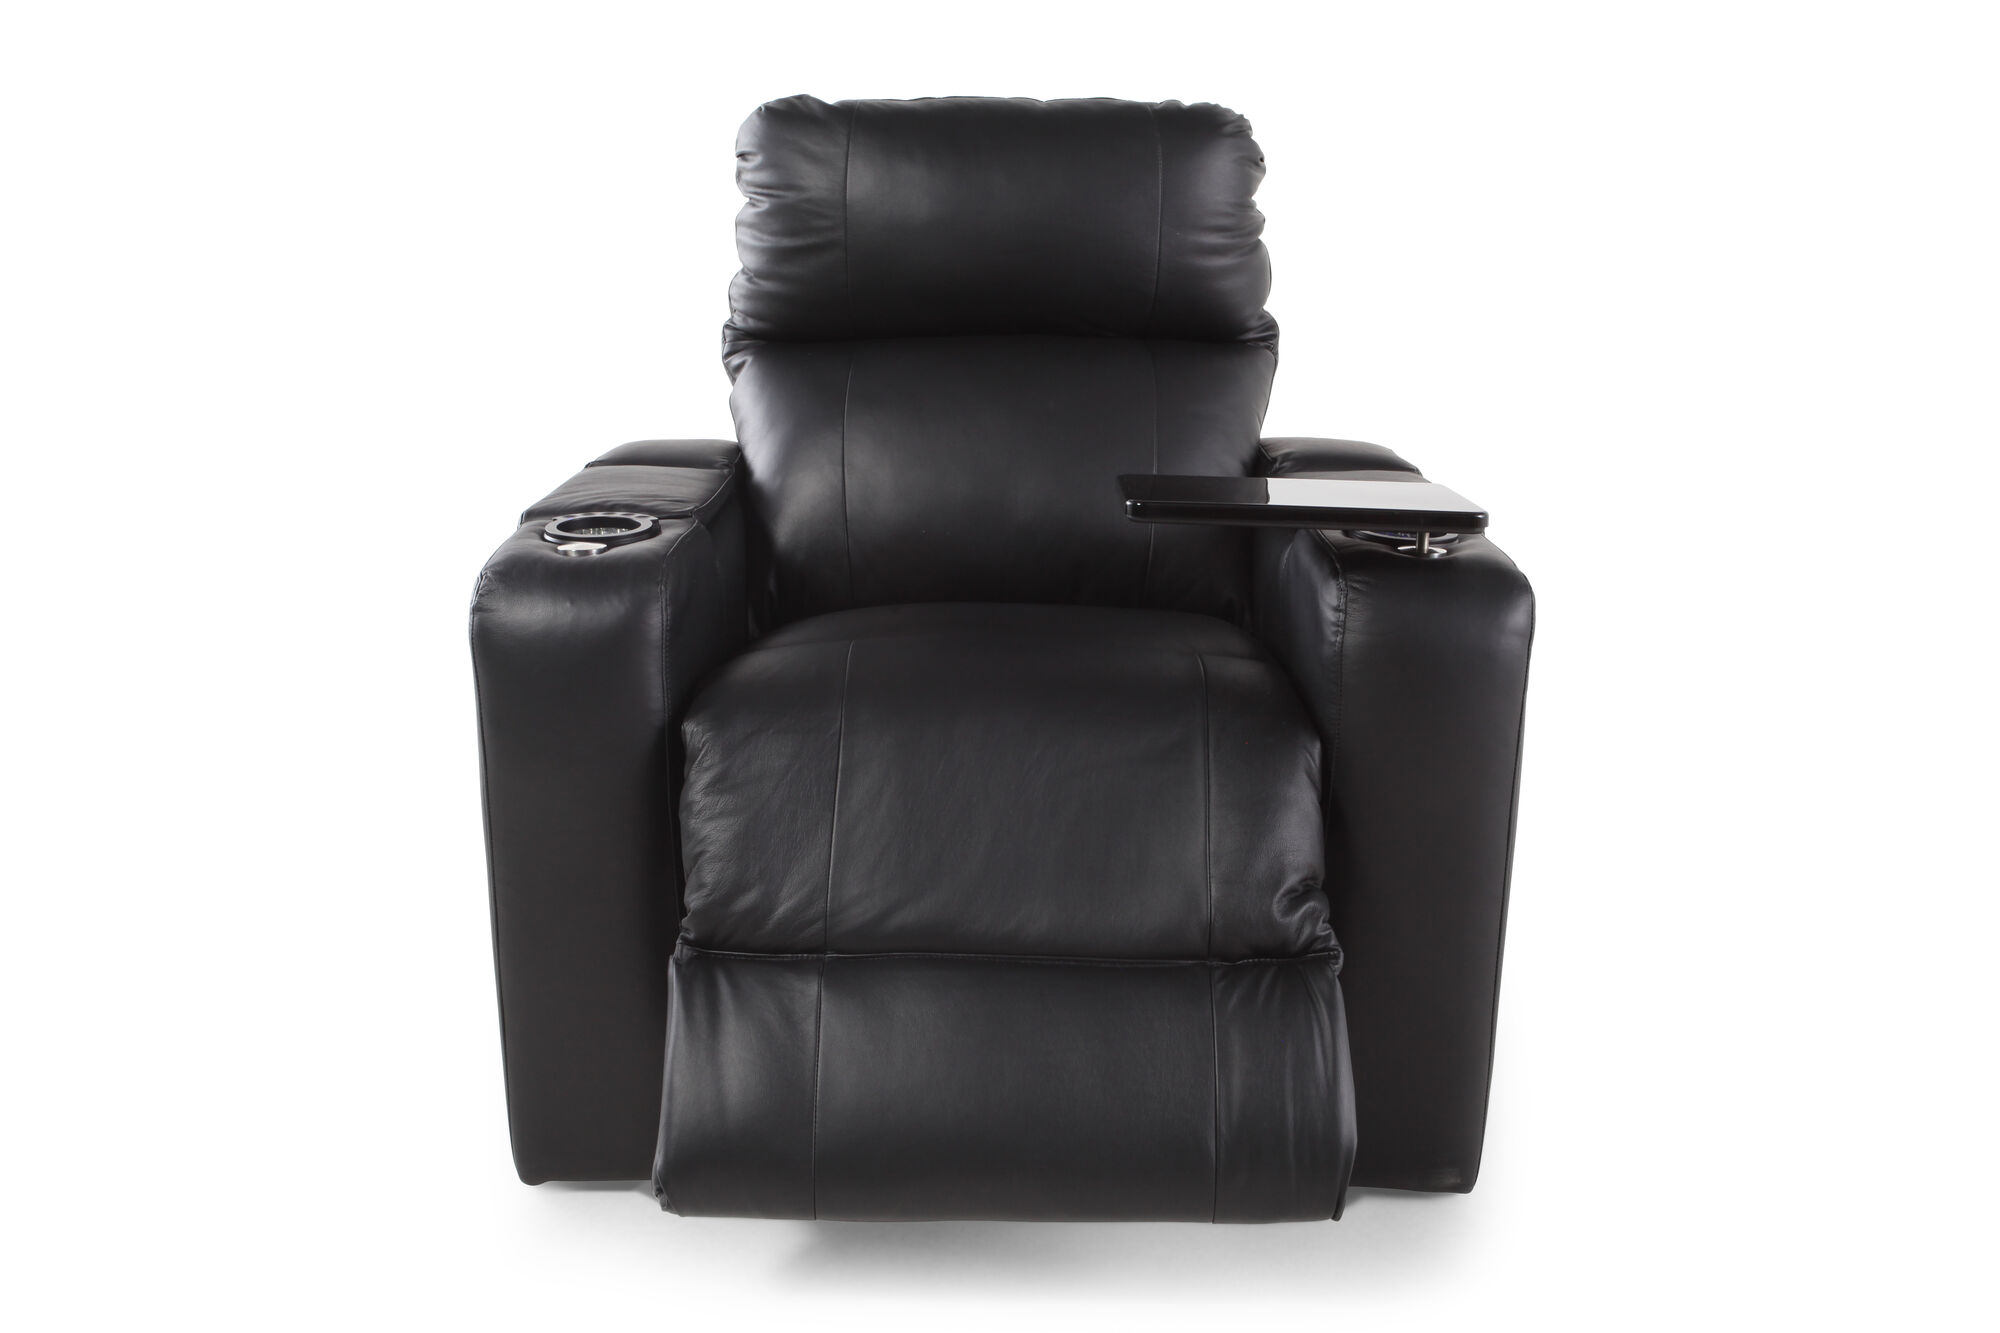 44 Recliner With Swivel Table In Midnight